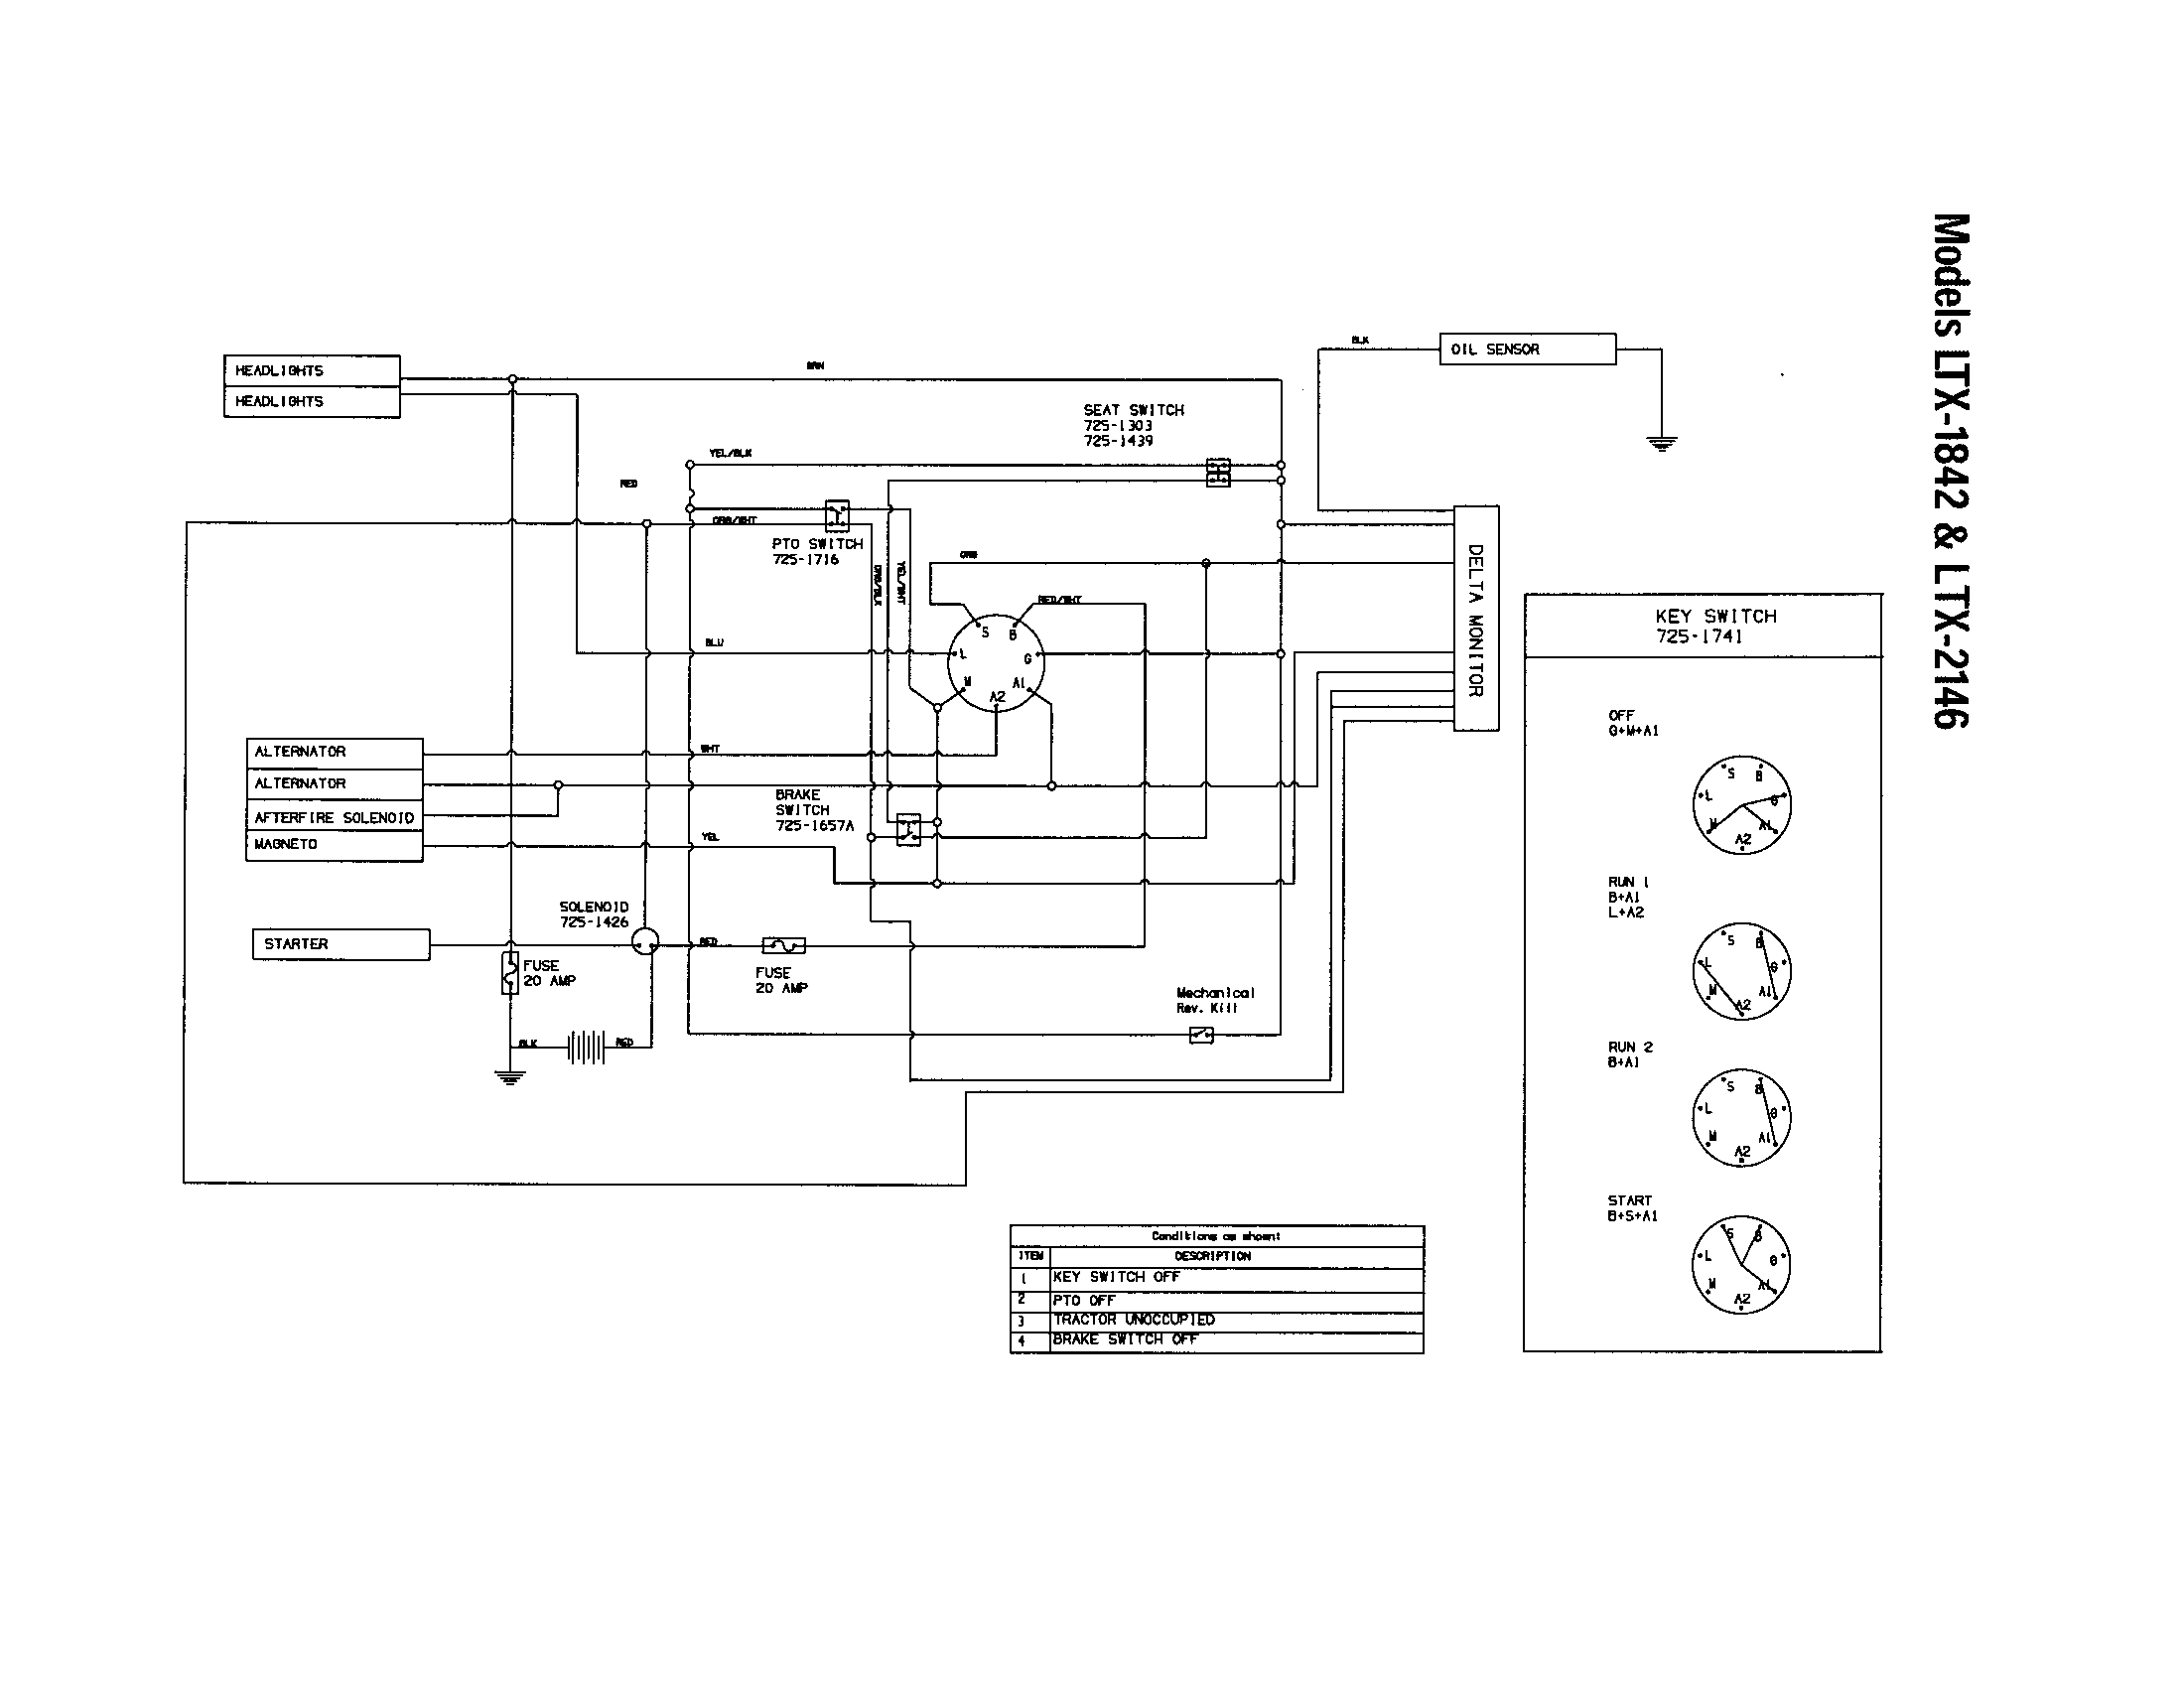 WIRING DIAGRAM Diagram & Parts List for Model 13AP609G063